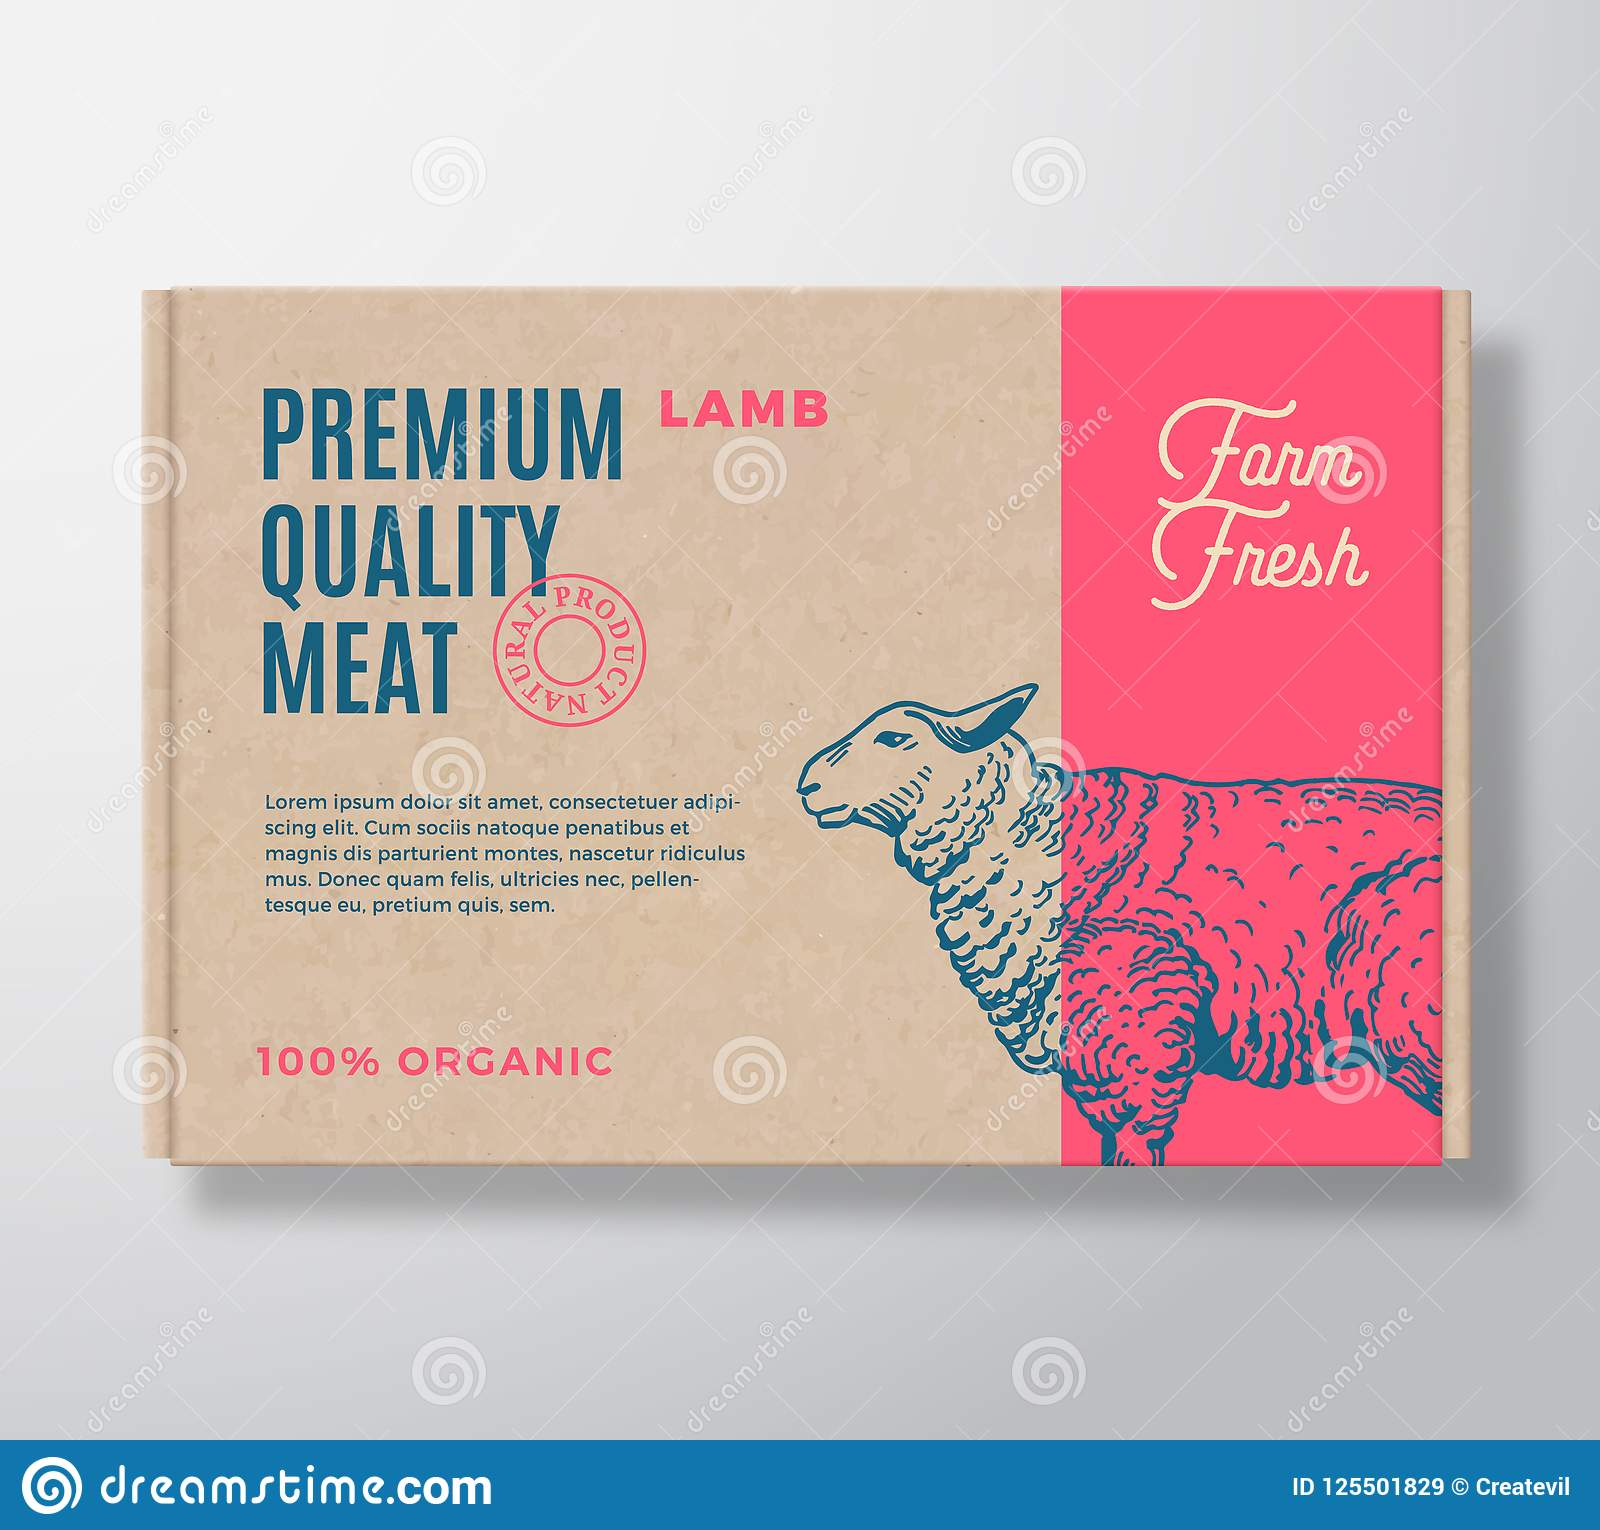 Premium Quality Lamb Vector Meat Packaging Label Design On A Craft